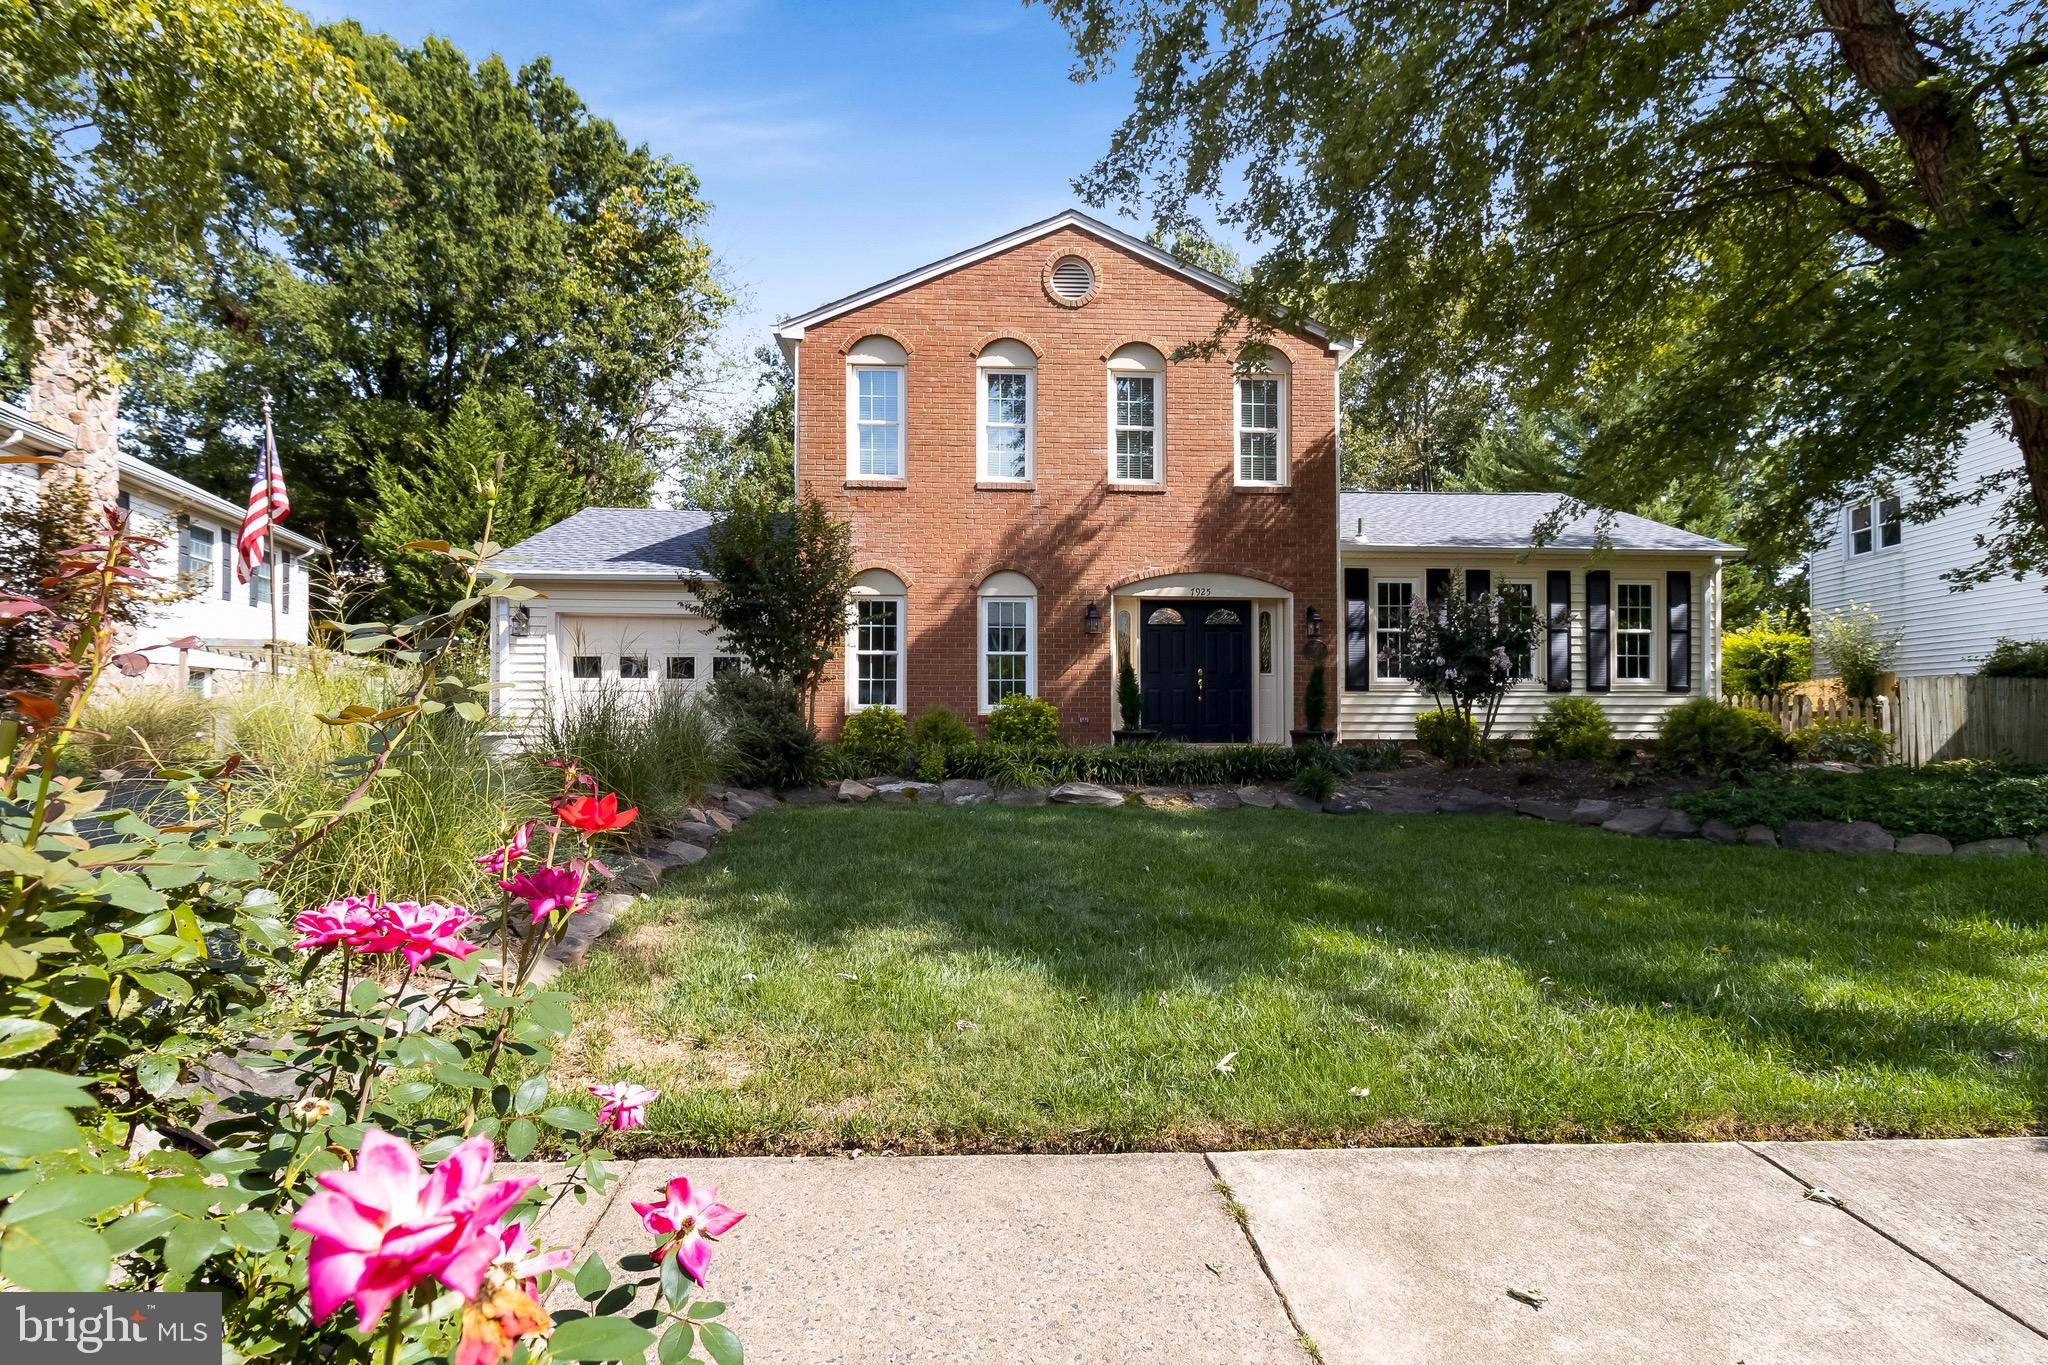 Immpeccably maintained home in the sought after  Saratoga. Quick access to Franconia-Springfield Metro.14 Miles to DC. 5 minutes to Ft. Belvoir. This gorgeous home is one of the largest in the community .  Screened in porch w/ mounted tv, ceiling fan & steps down to deck. 1st flr bedrm w/ full bath. Bright interior w/hardwood on main level. Spacious family rm w/ wood burning Fireplace. Sunny kitchen, Granite countertops, tile flooring, Main level laundry.   Family off kitchen. Spacious bedrooms, remodeled master bath. Engineered flooring in basement. New roof, new HVAC, new windows. Open this weekend!